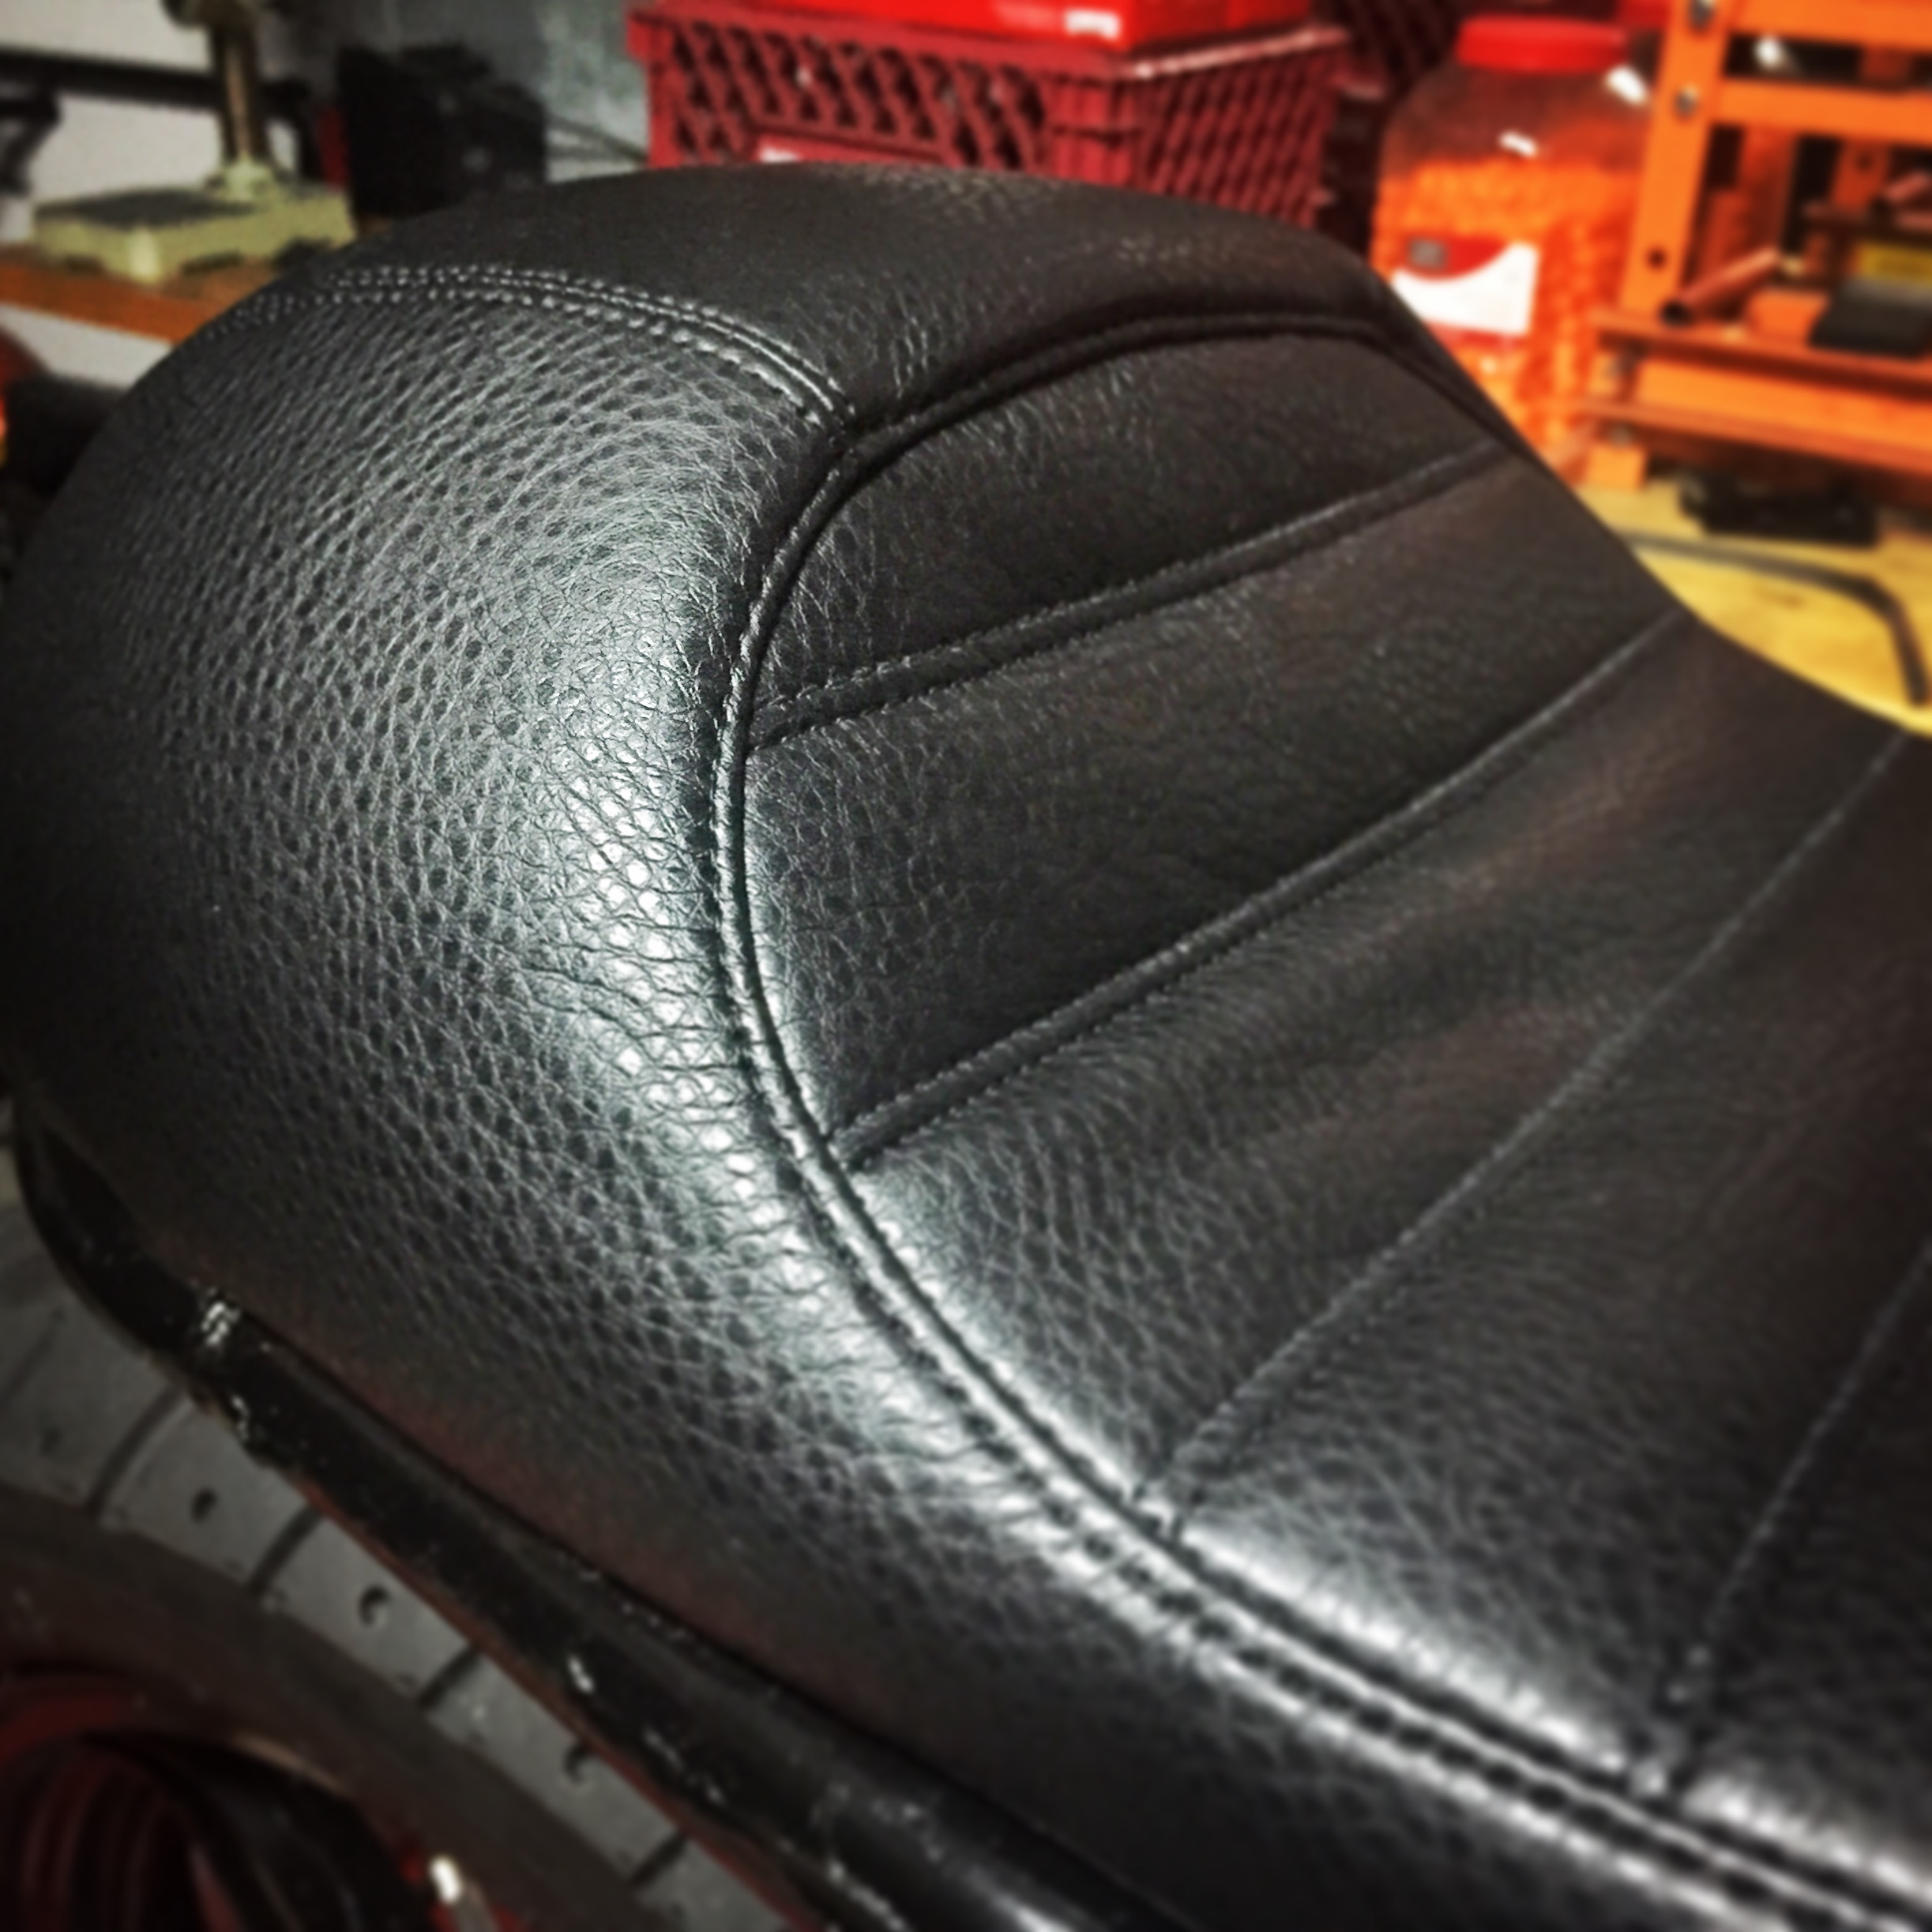 We hand craft all of our seats in house. We decided to go with an upholstered café bump on this bike. The seat turned out beautiful, but we would later decide that the fork gaiters and stance of the bike demanded a brat style pancake seat. This cover would end up in the garbage.